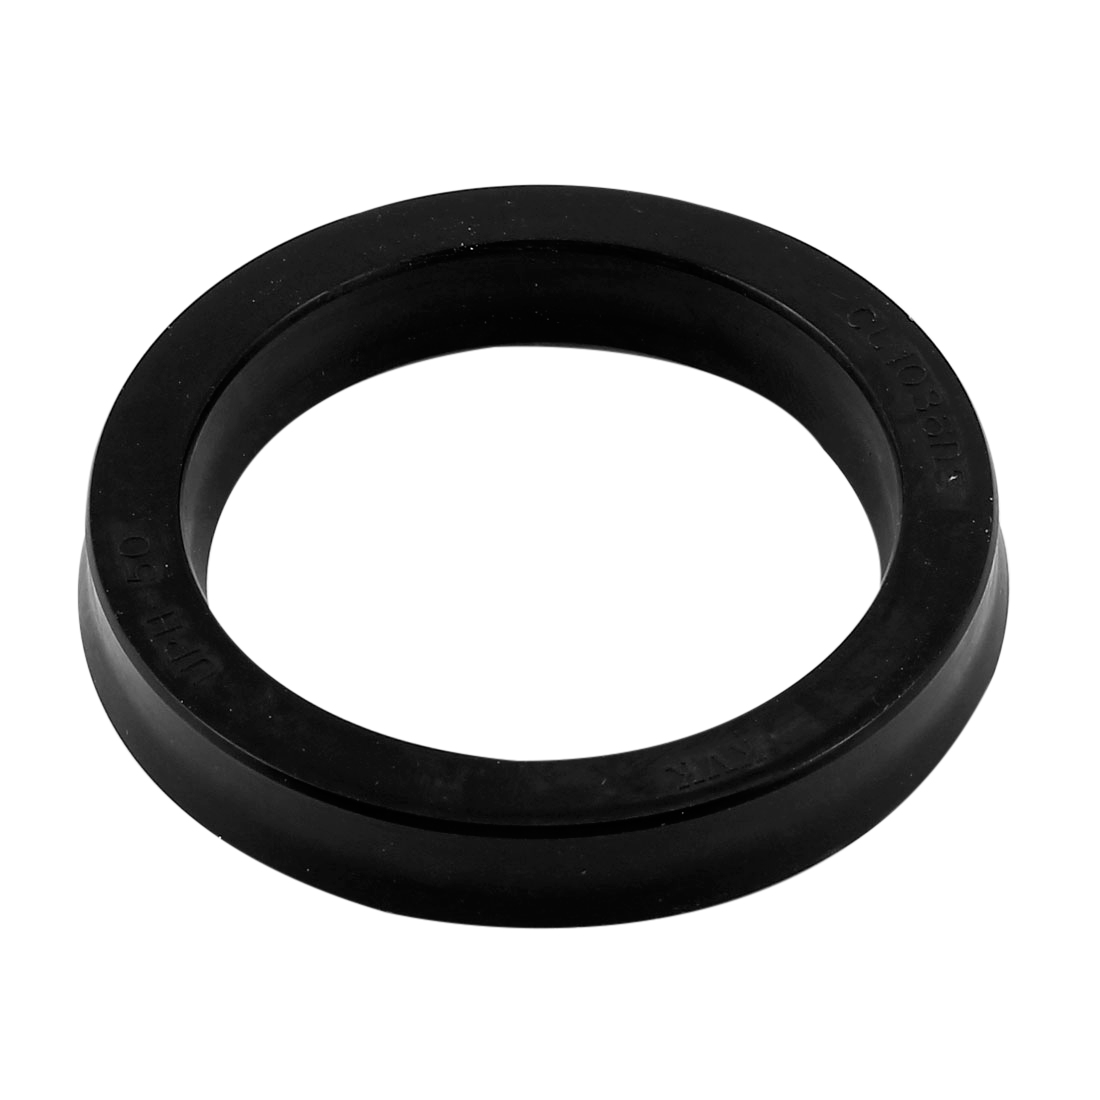 Replacement-50mm-Inner-Dia-Rubber-Skeleton-Oil-Resistant-Seal-Ring-Gasket